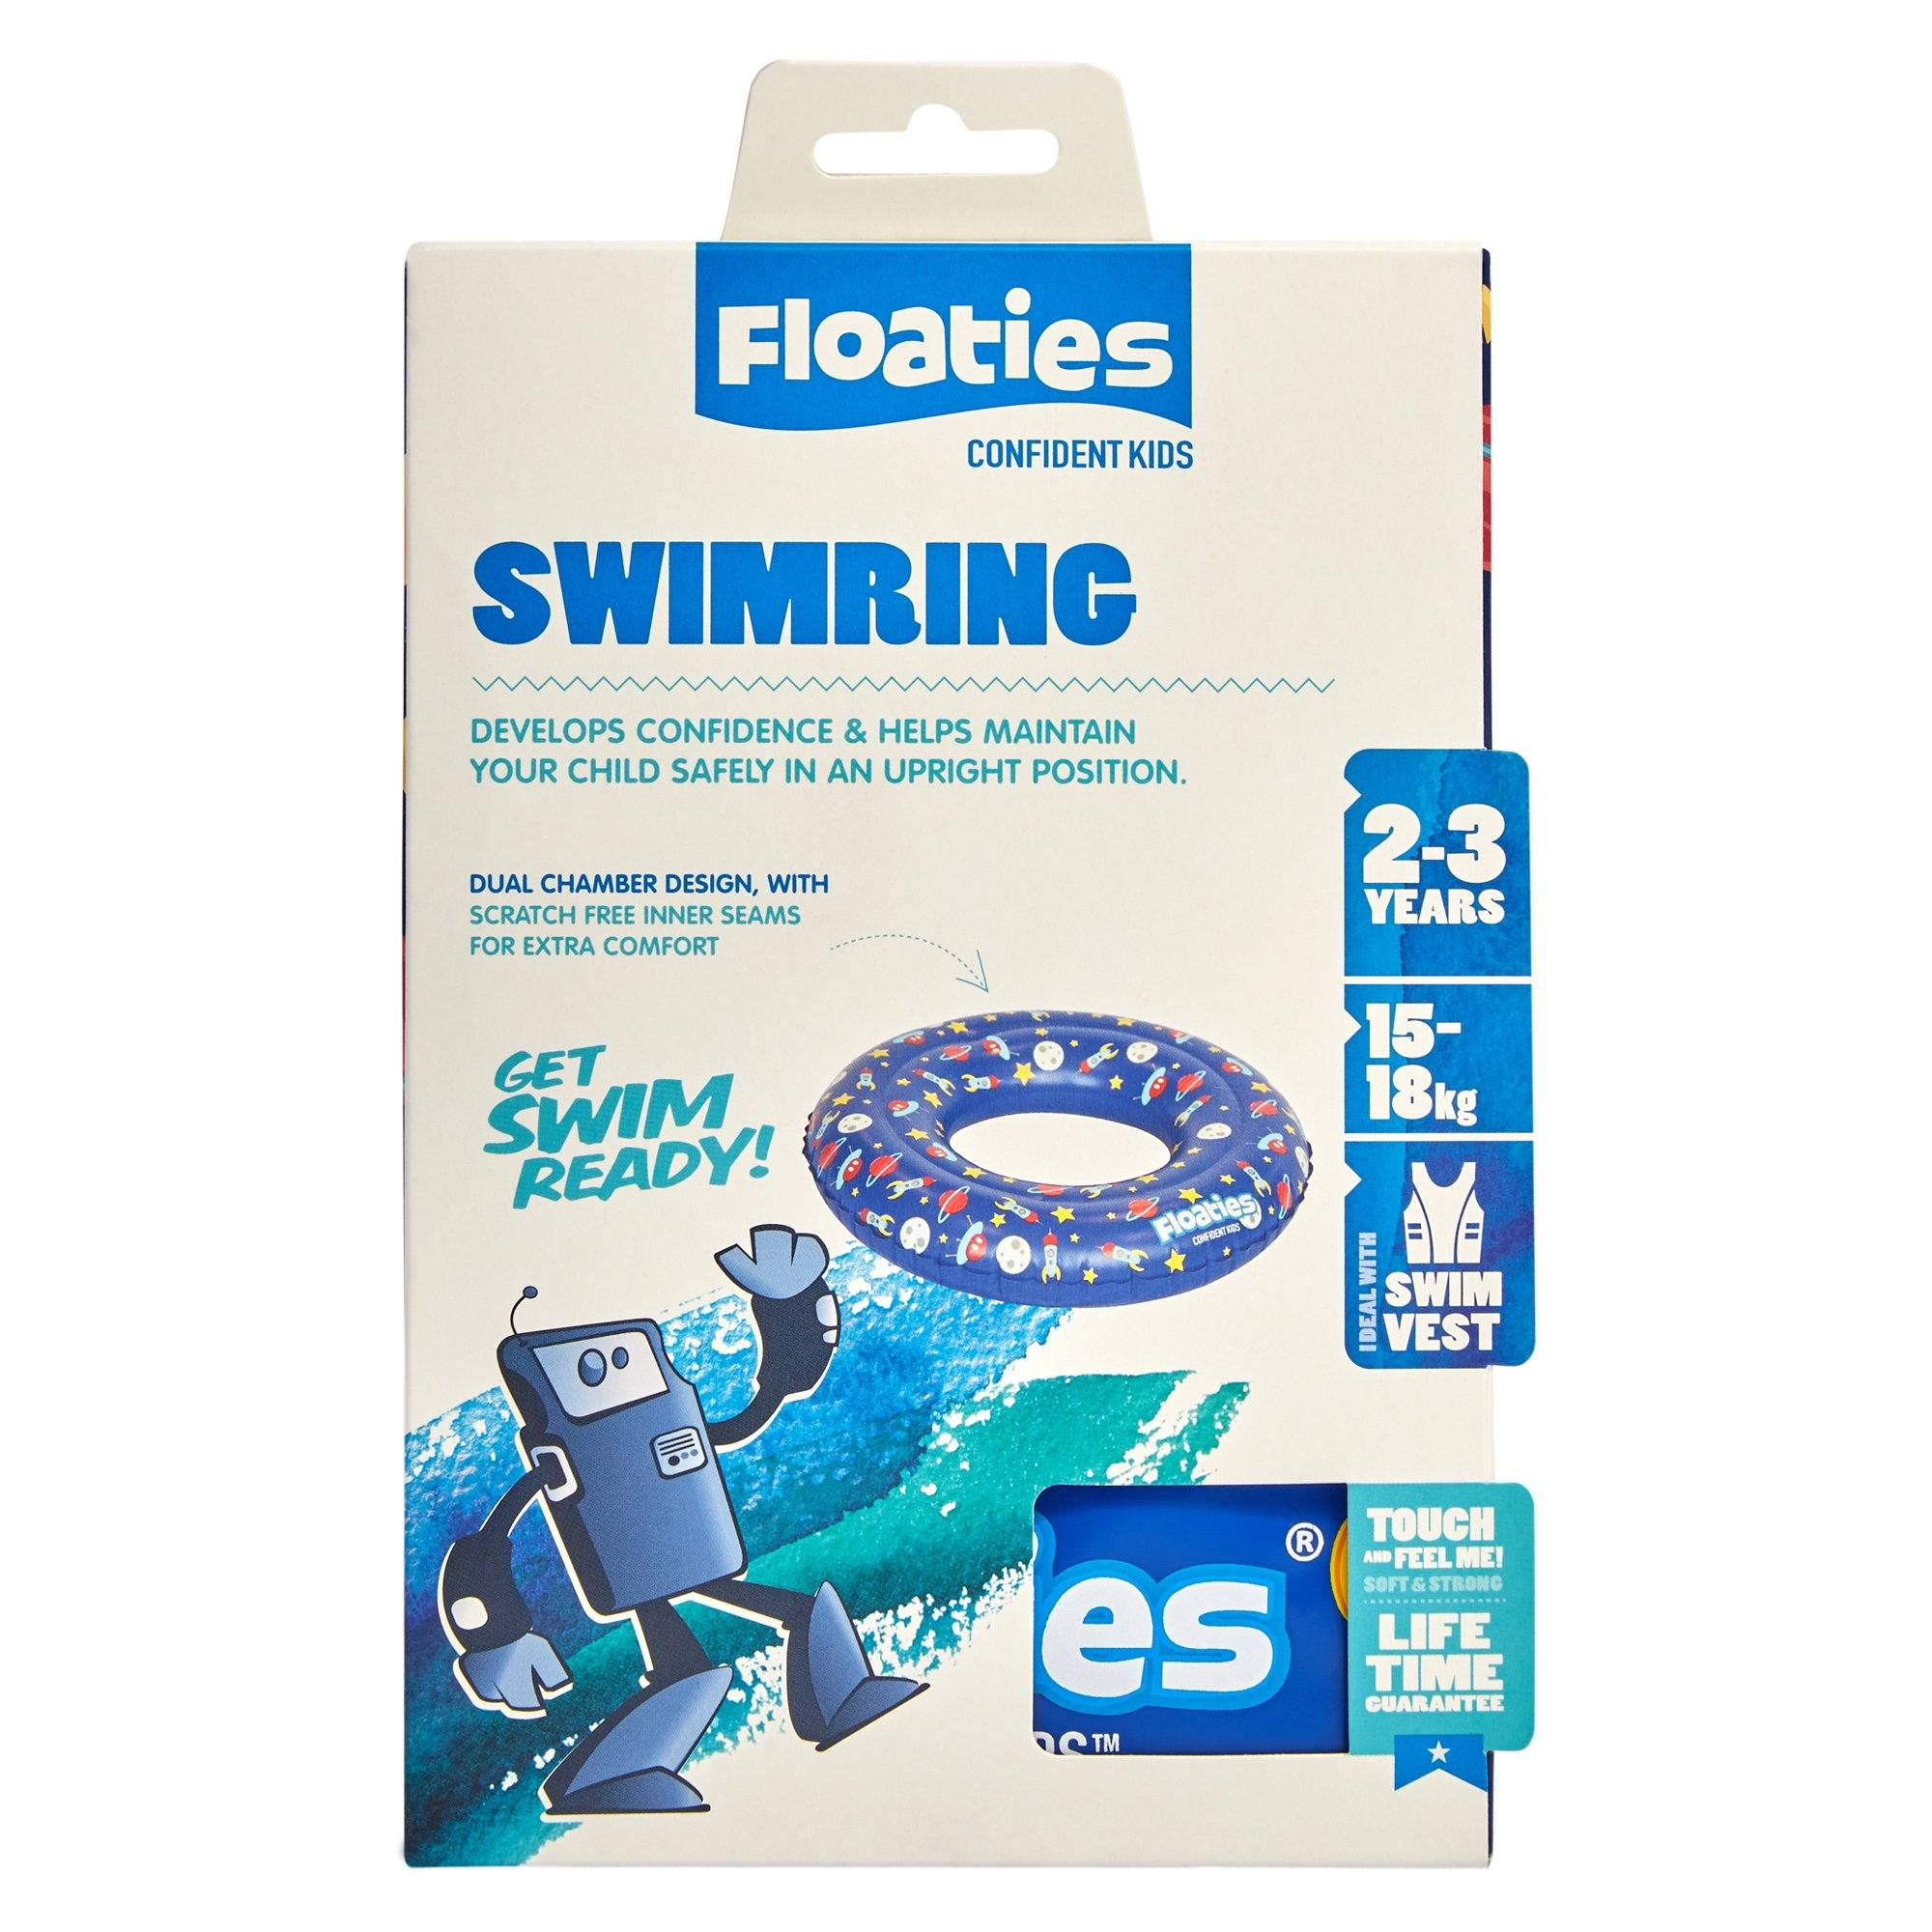 Floaties Swim Ring Smalll Boys Toys Isbister & Co Wholesale